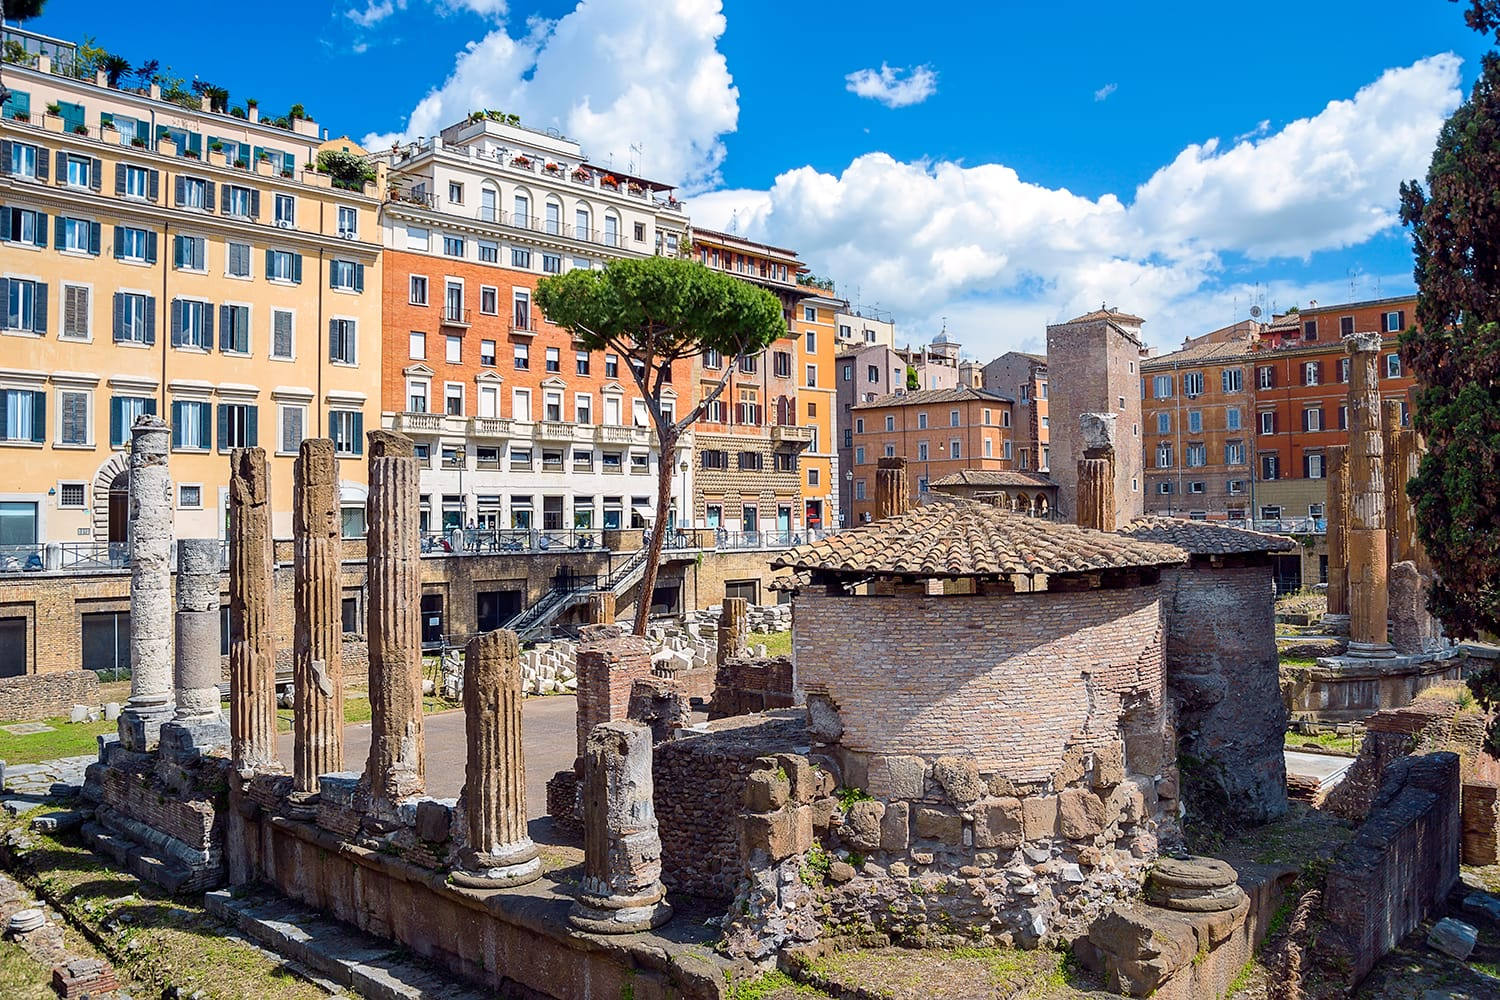 Largo di Torre Argentina. Square with ancient ruins of four Roman Republican temples and Pompey's Theatre in Rome, Italy